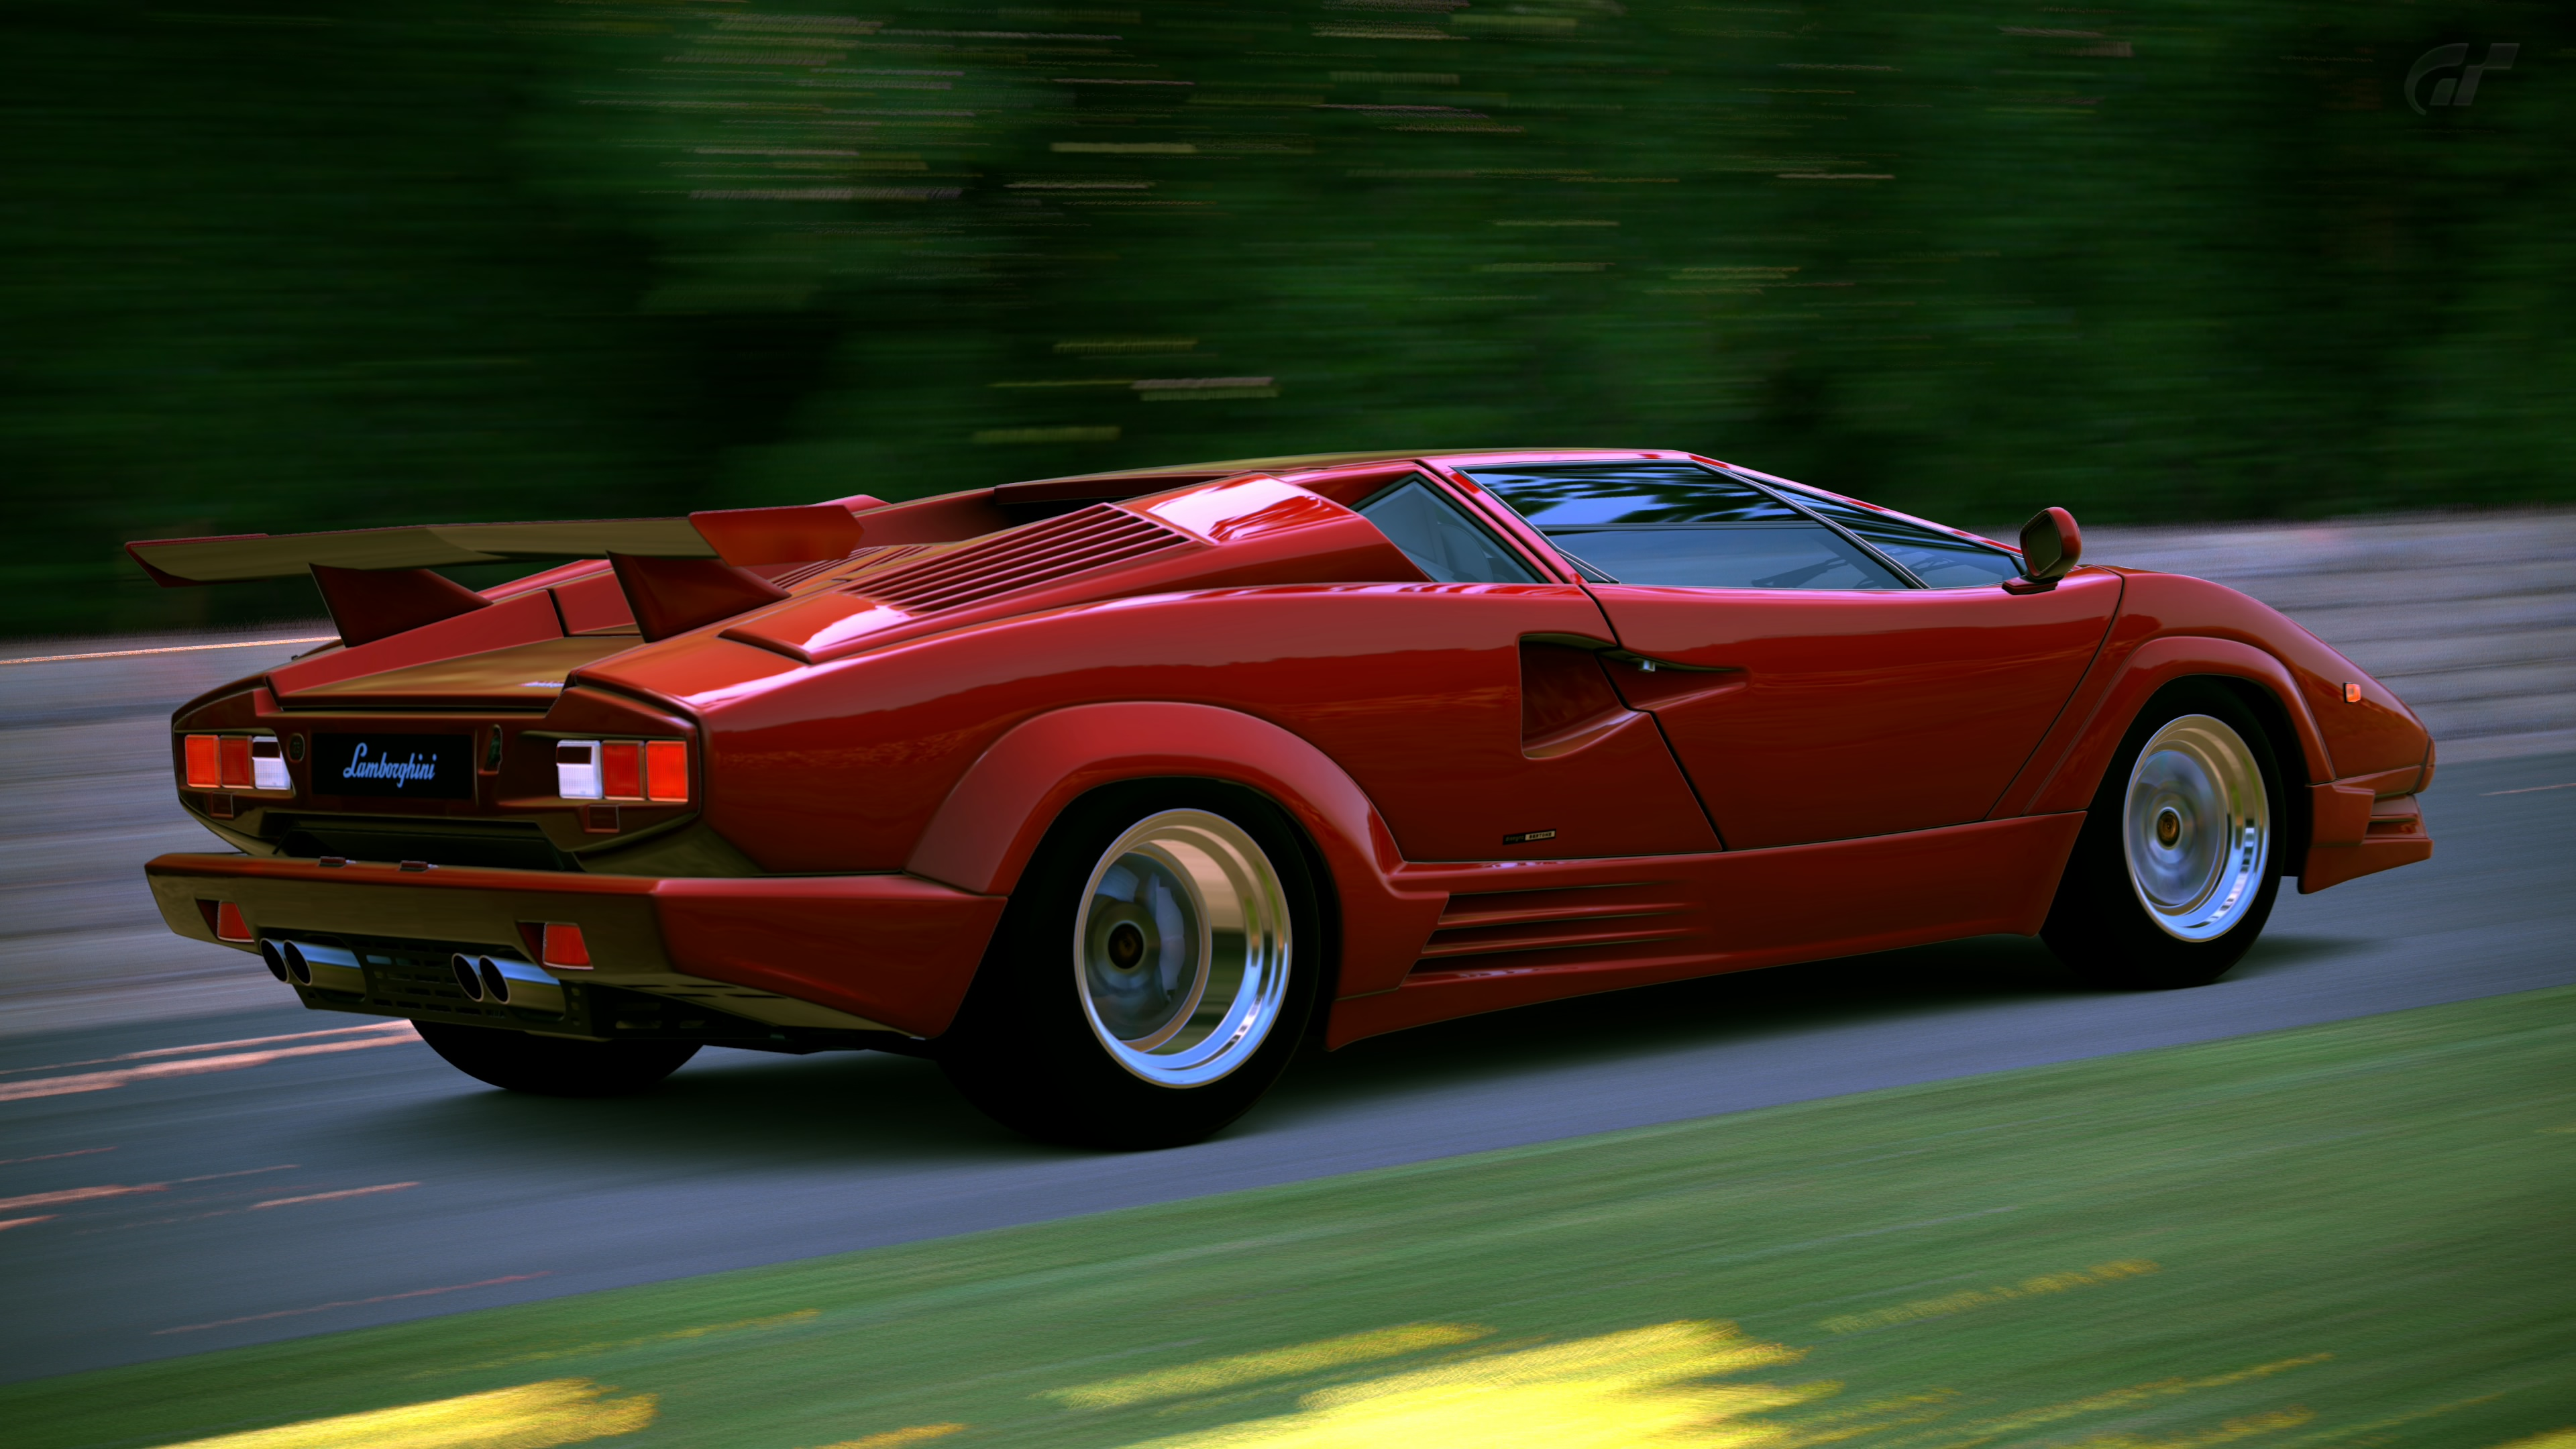 Lamborghini Countach 25th Anniversary 88 Www Pixshark Com Images Galleries With A Bite